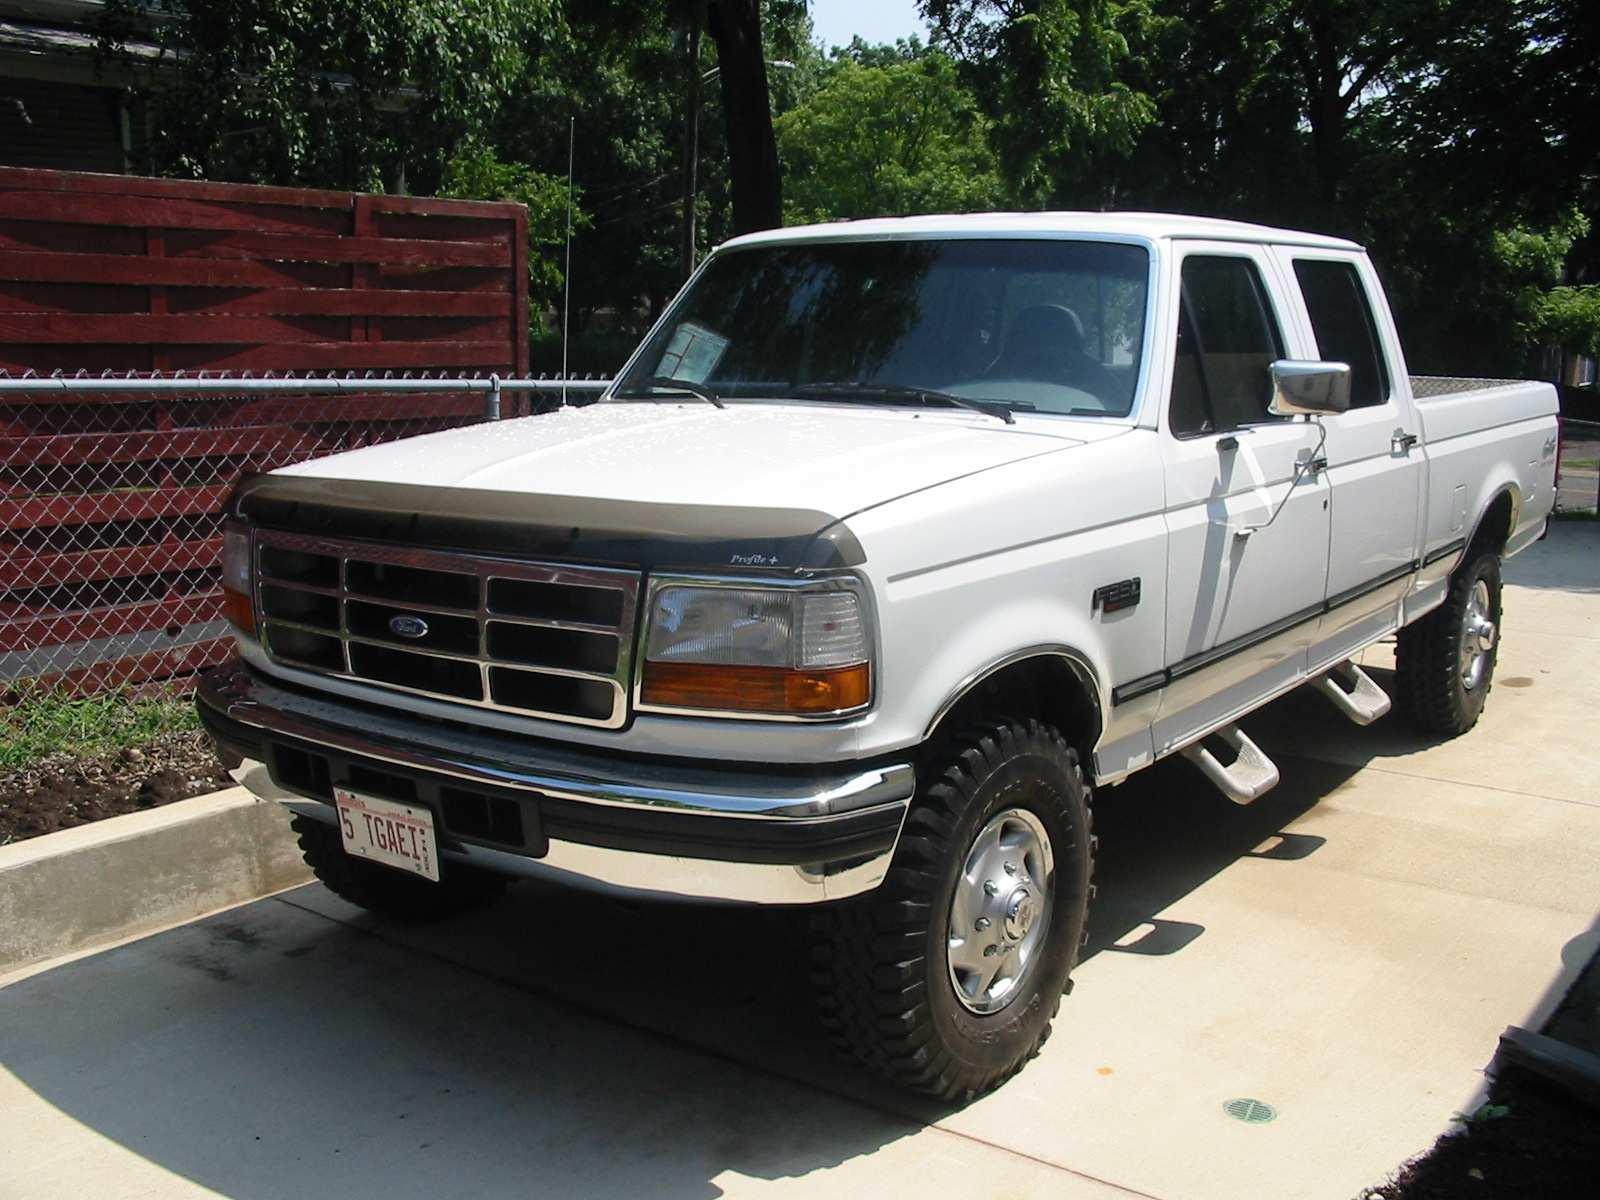 1996 ford f-250 - overview